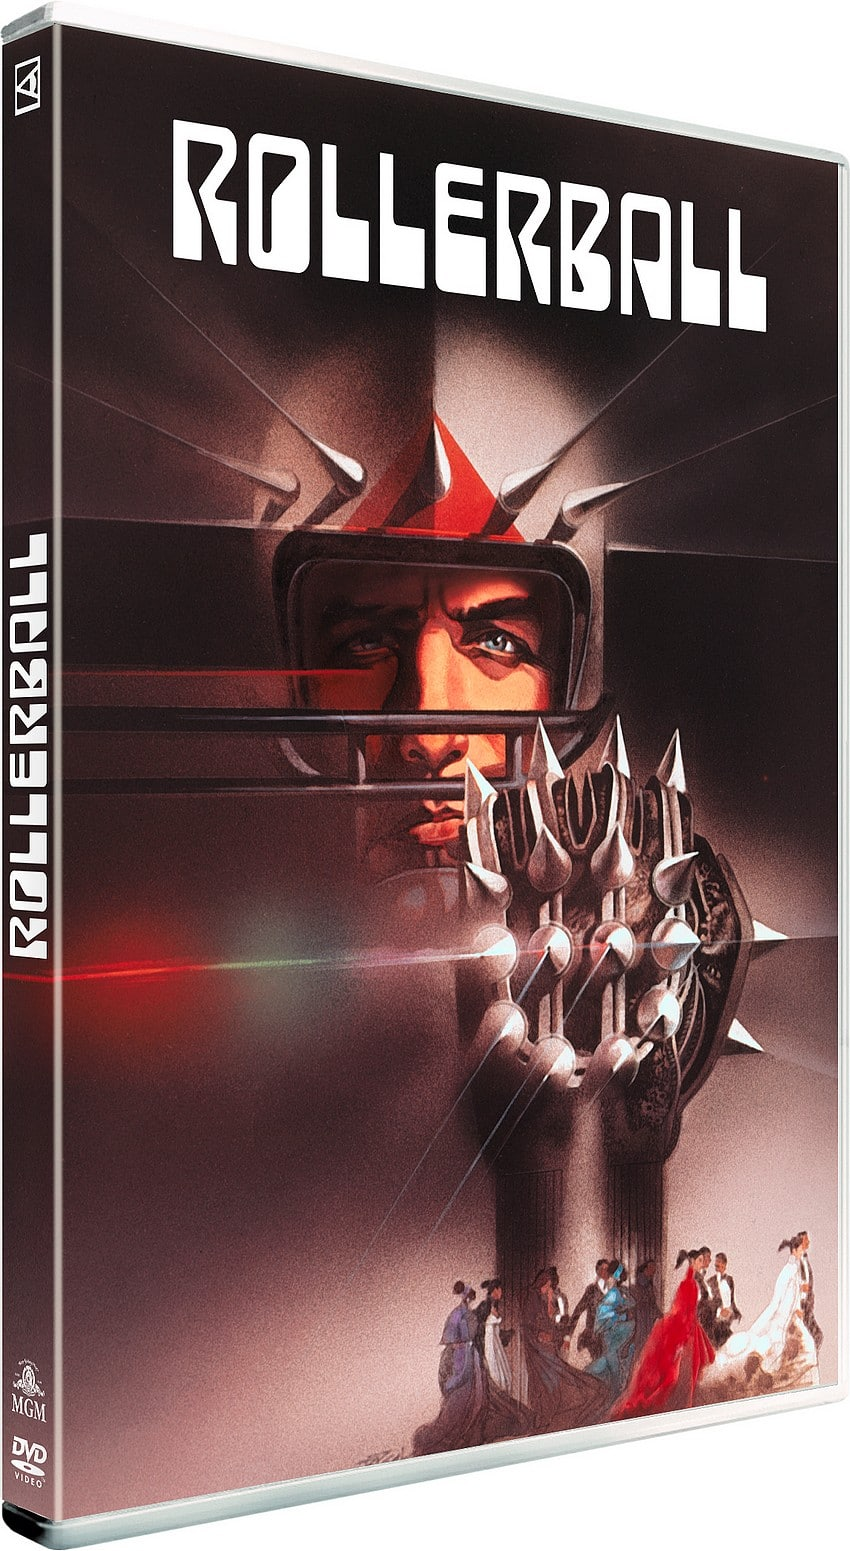 image-film-rollerball-2